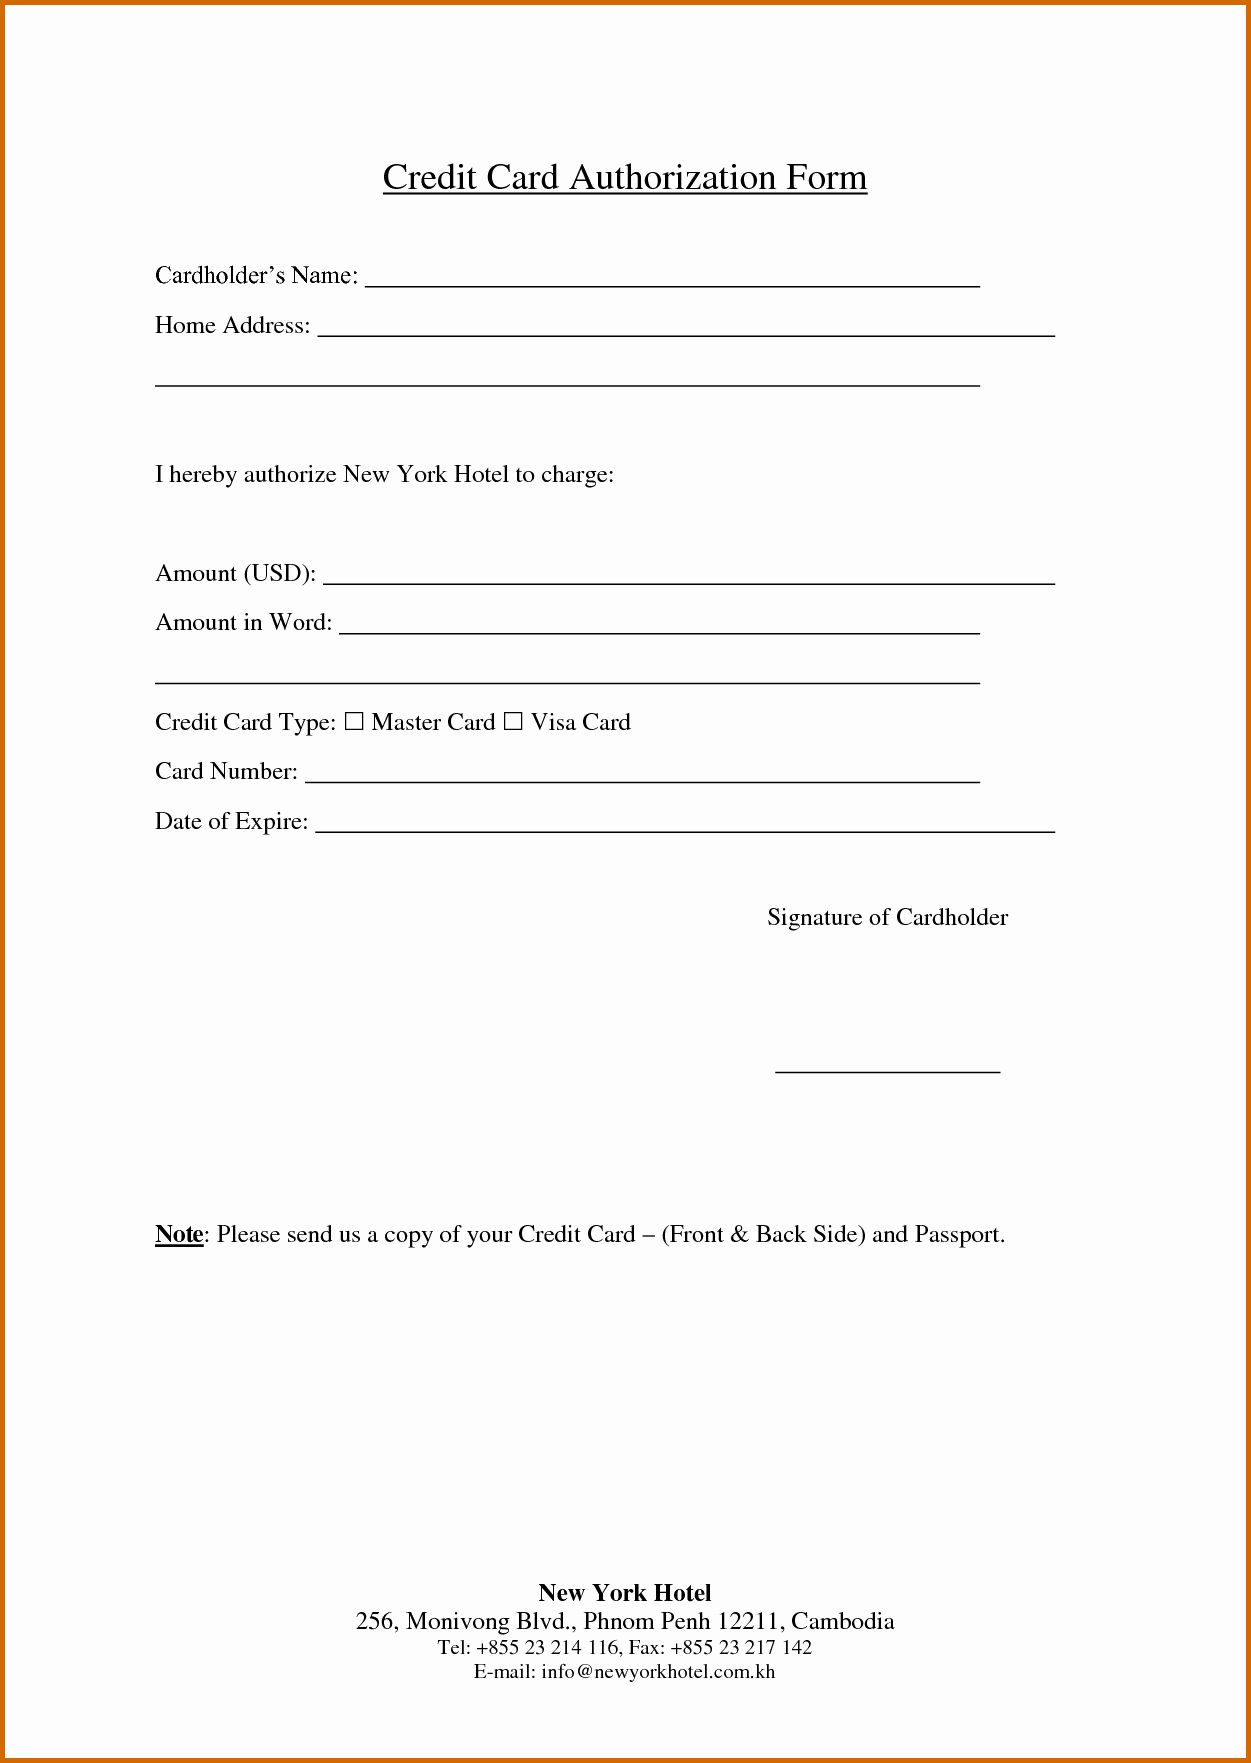 Credit Card Authorization Form Template Fresh 13 Printable Credit Card Authorization Form Credit Card Design Credit Card Pictures Templates Printable Free